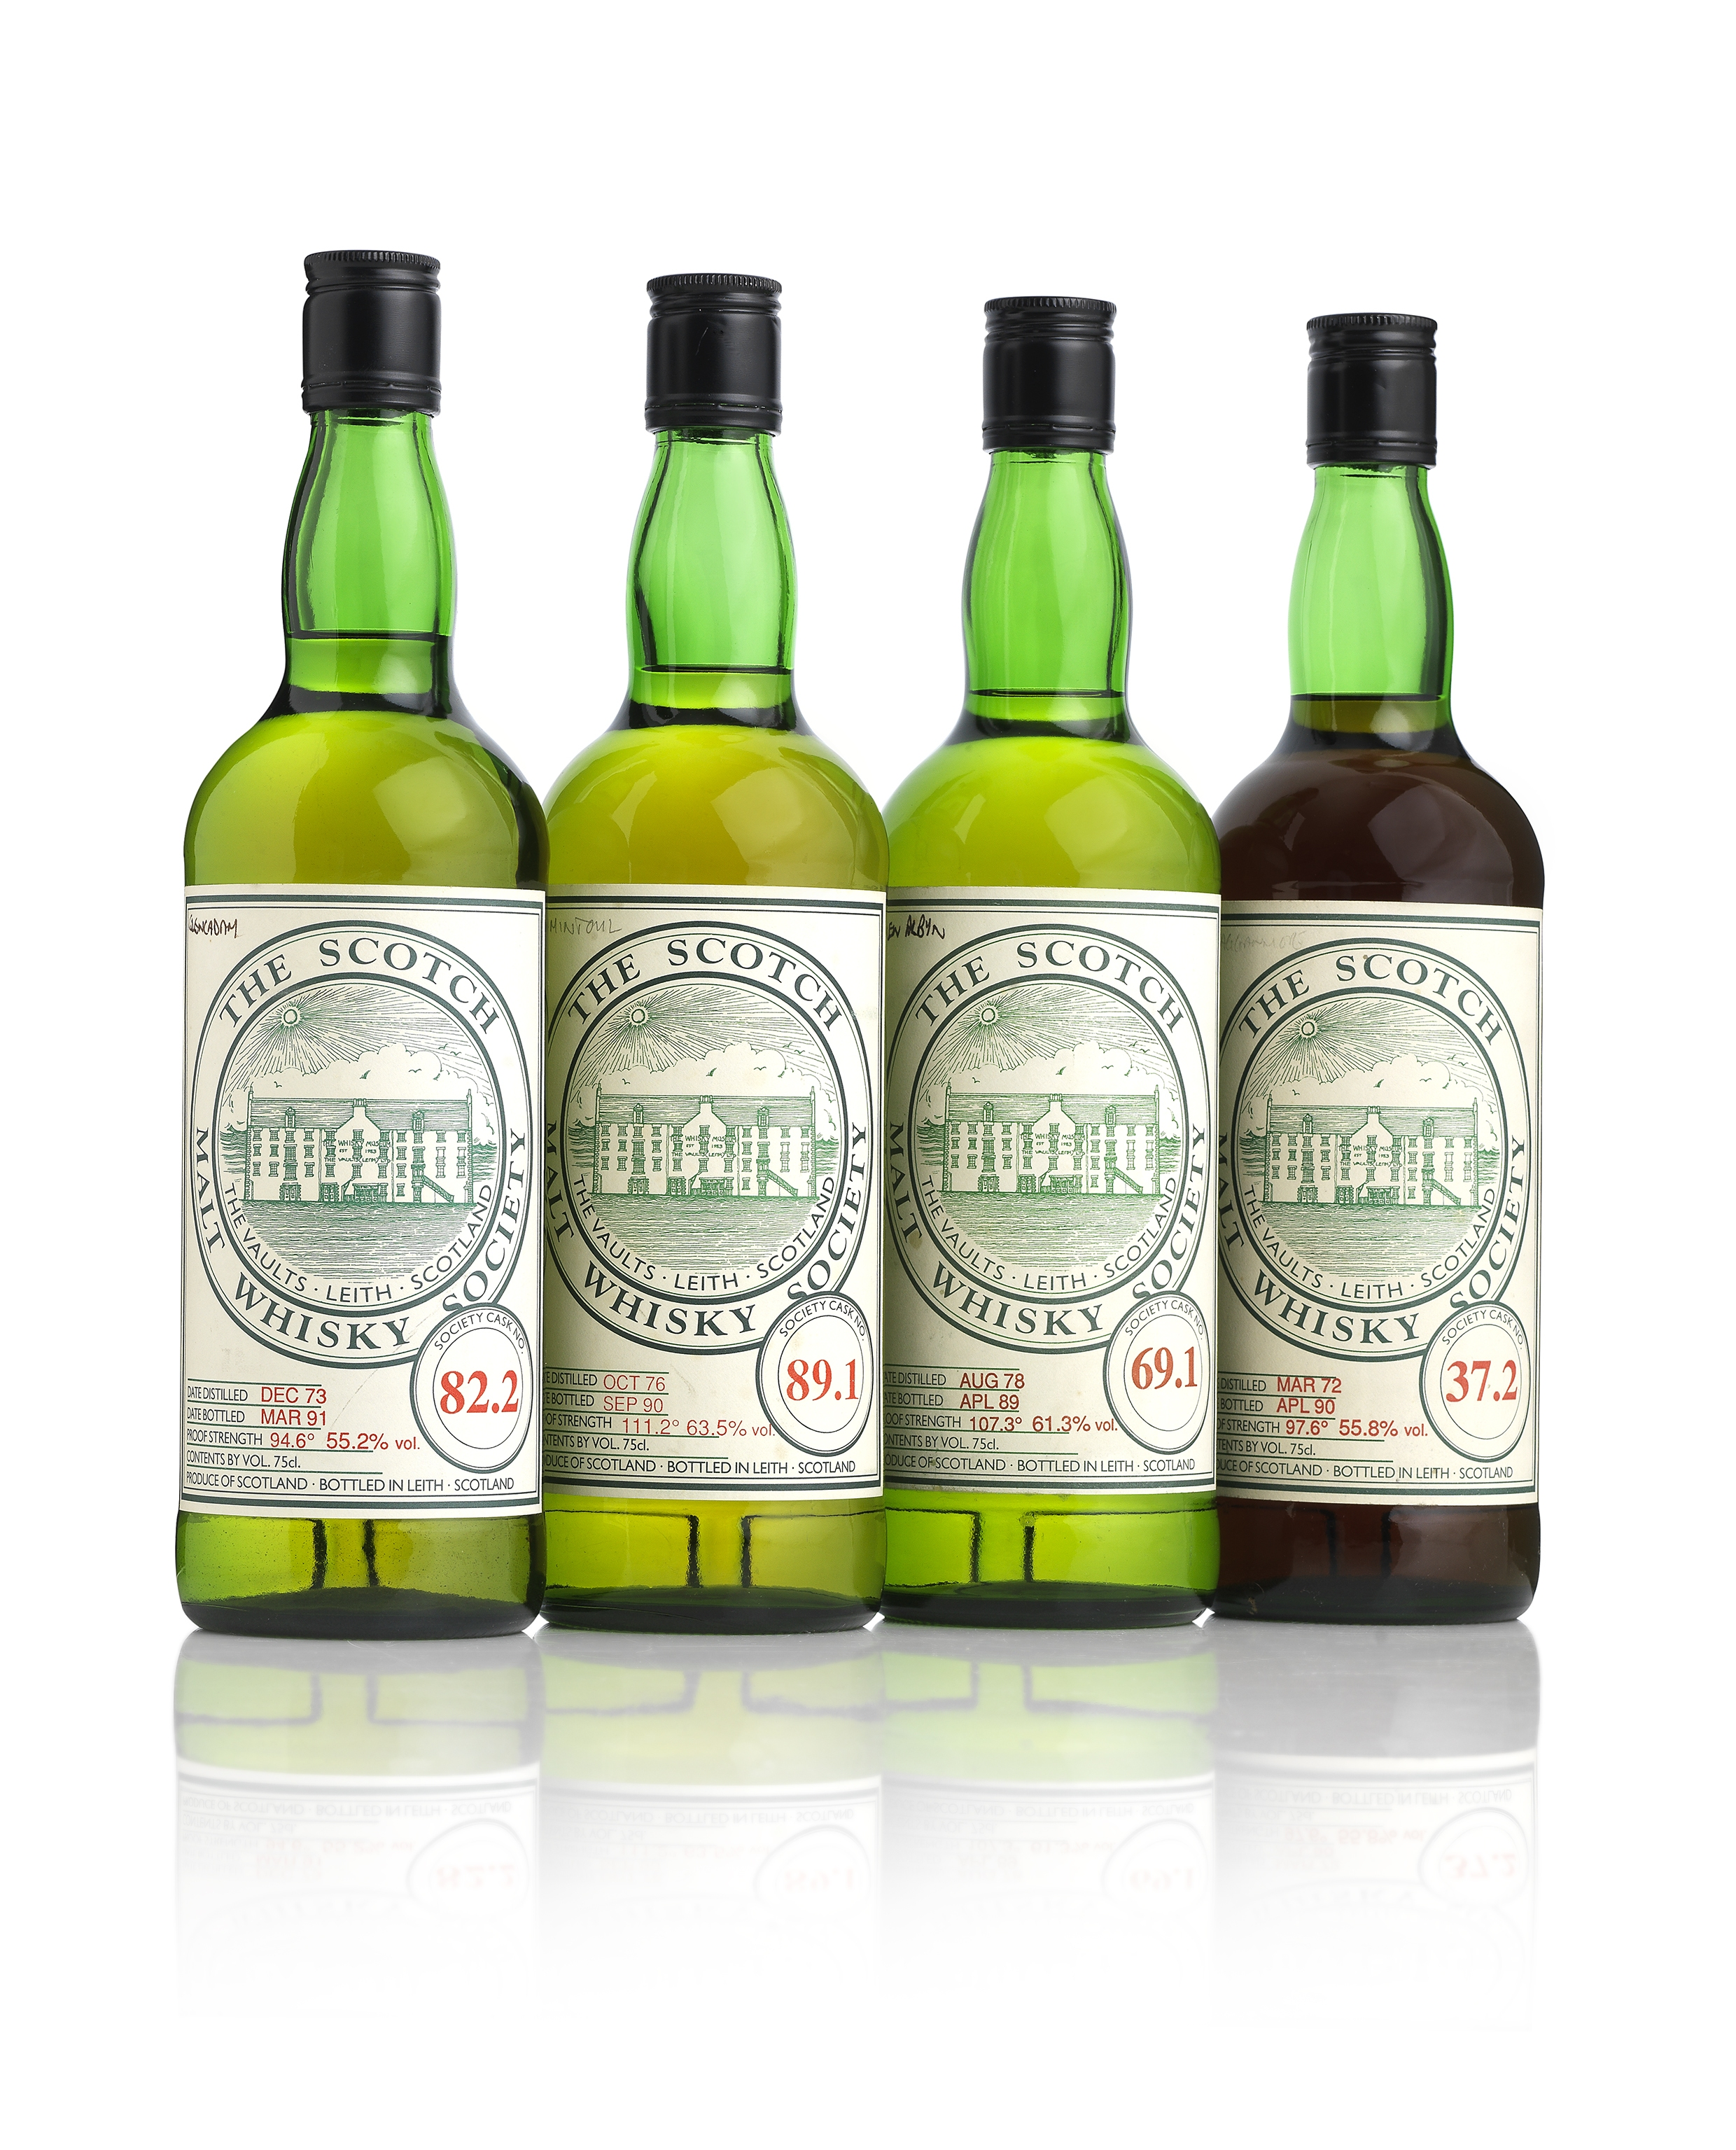 Tomintoul-1976 (SMWS 89.1) - Image 2 of 2